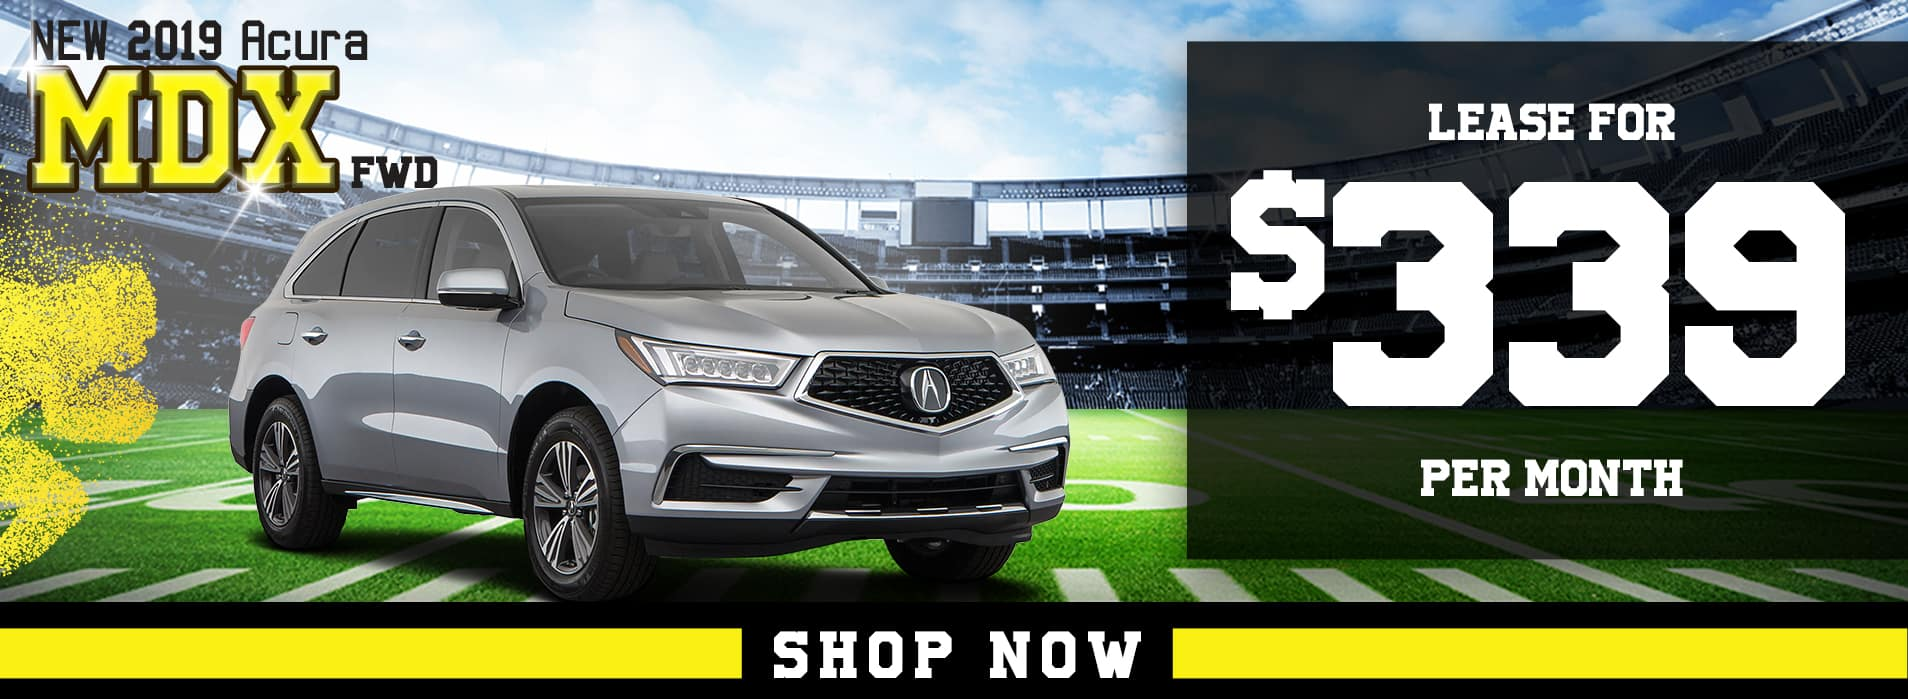 MDX lease for $339 per mo